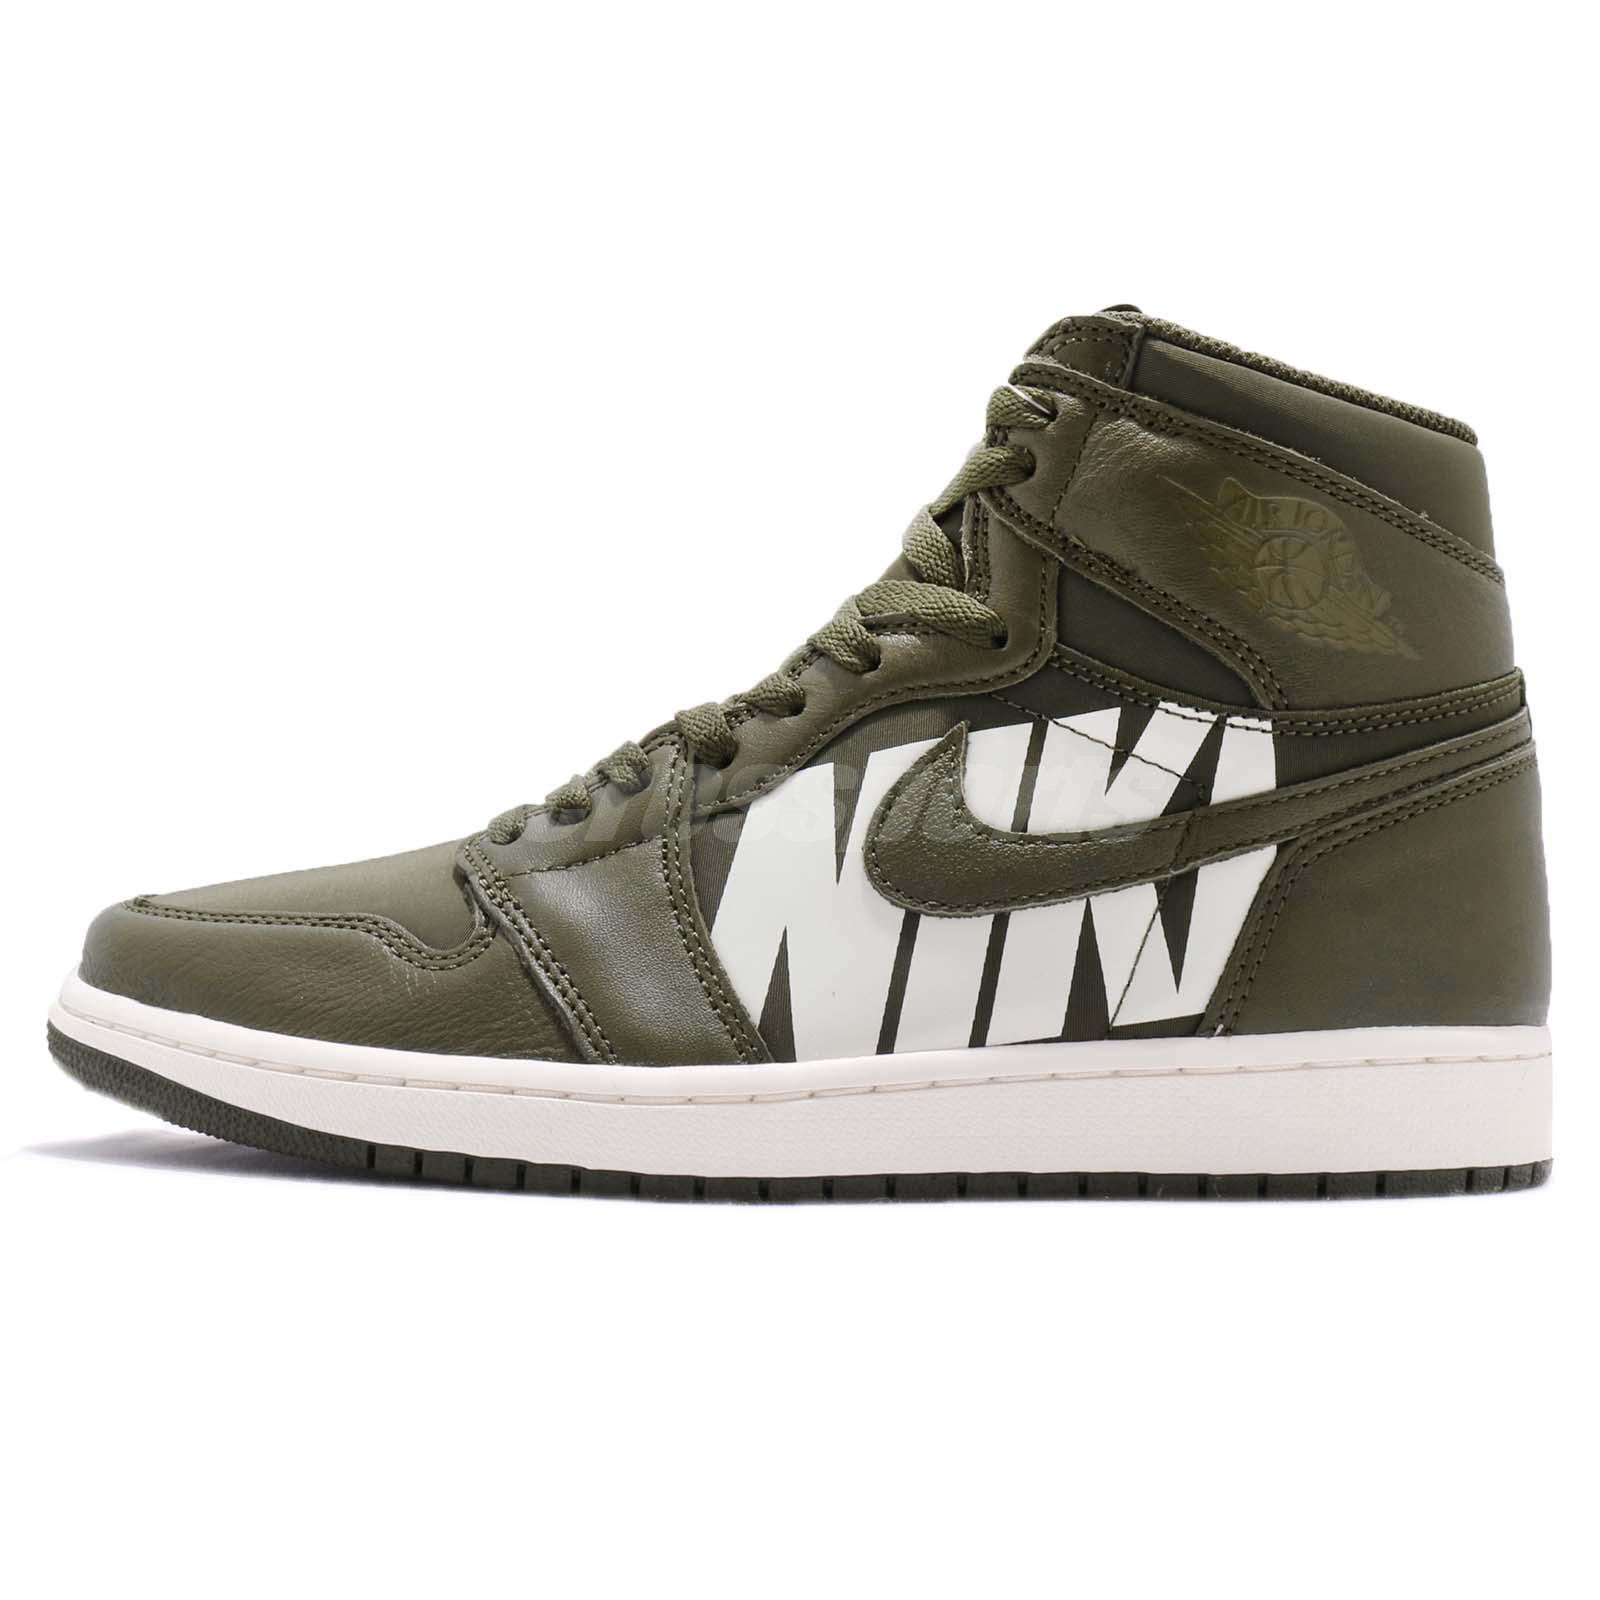 28c7992b2b5 Nike Air Jordan 1 Retro High OG Big Logos Olive Canvas Sail AJ1 Men  555088-300